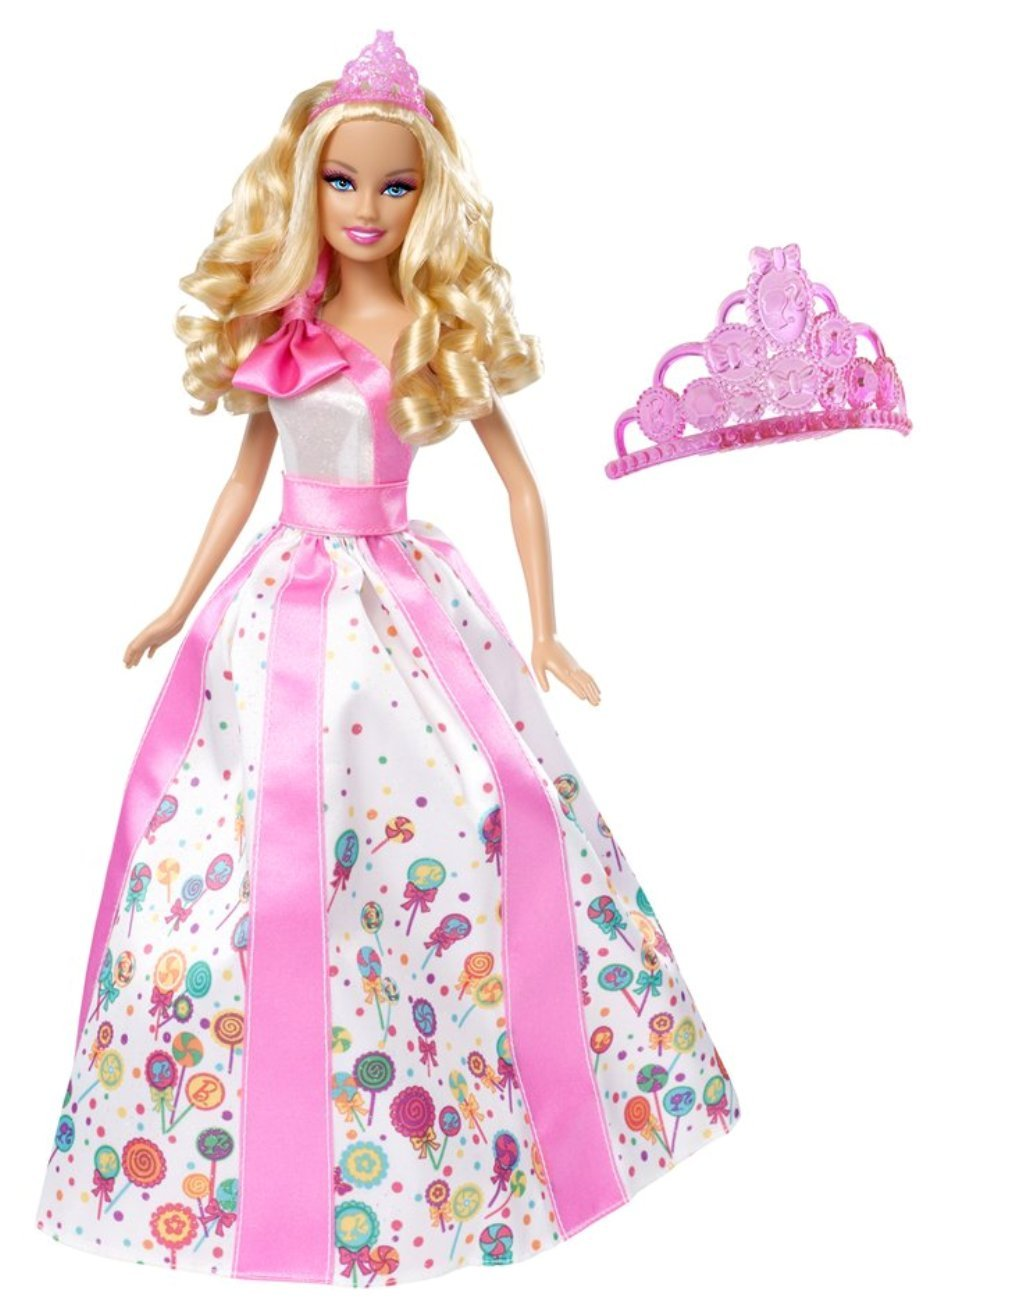 an analysis of the 40th birthday of barbie the doll For the perfect birthday, you need the perfect birthday cake ferguson plarre bakehouse has a wide range of birthday cakes to suit every member of the family order online for your next birthday party.